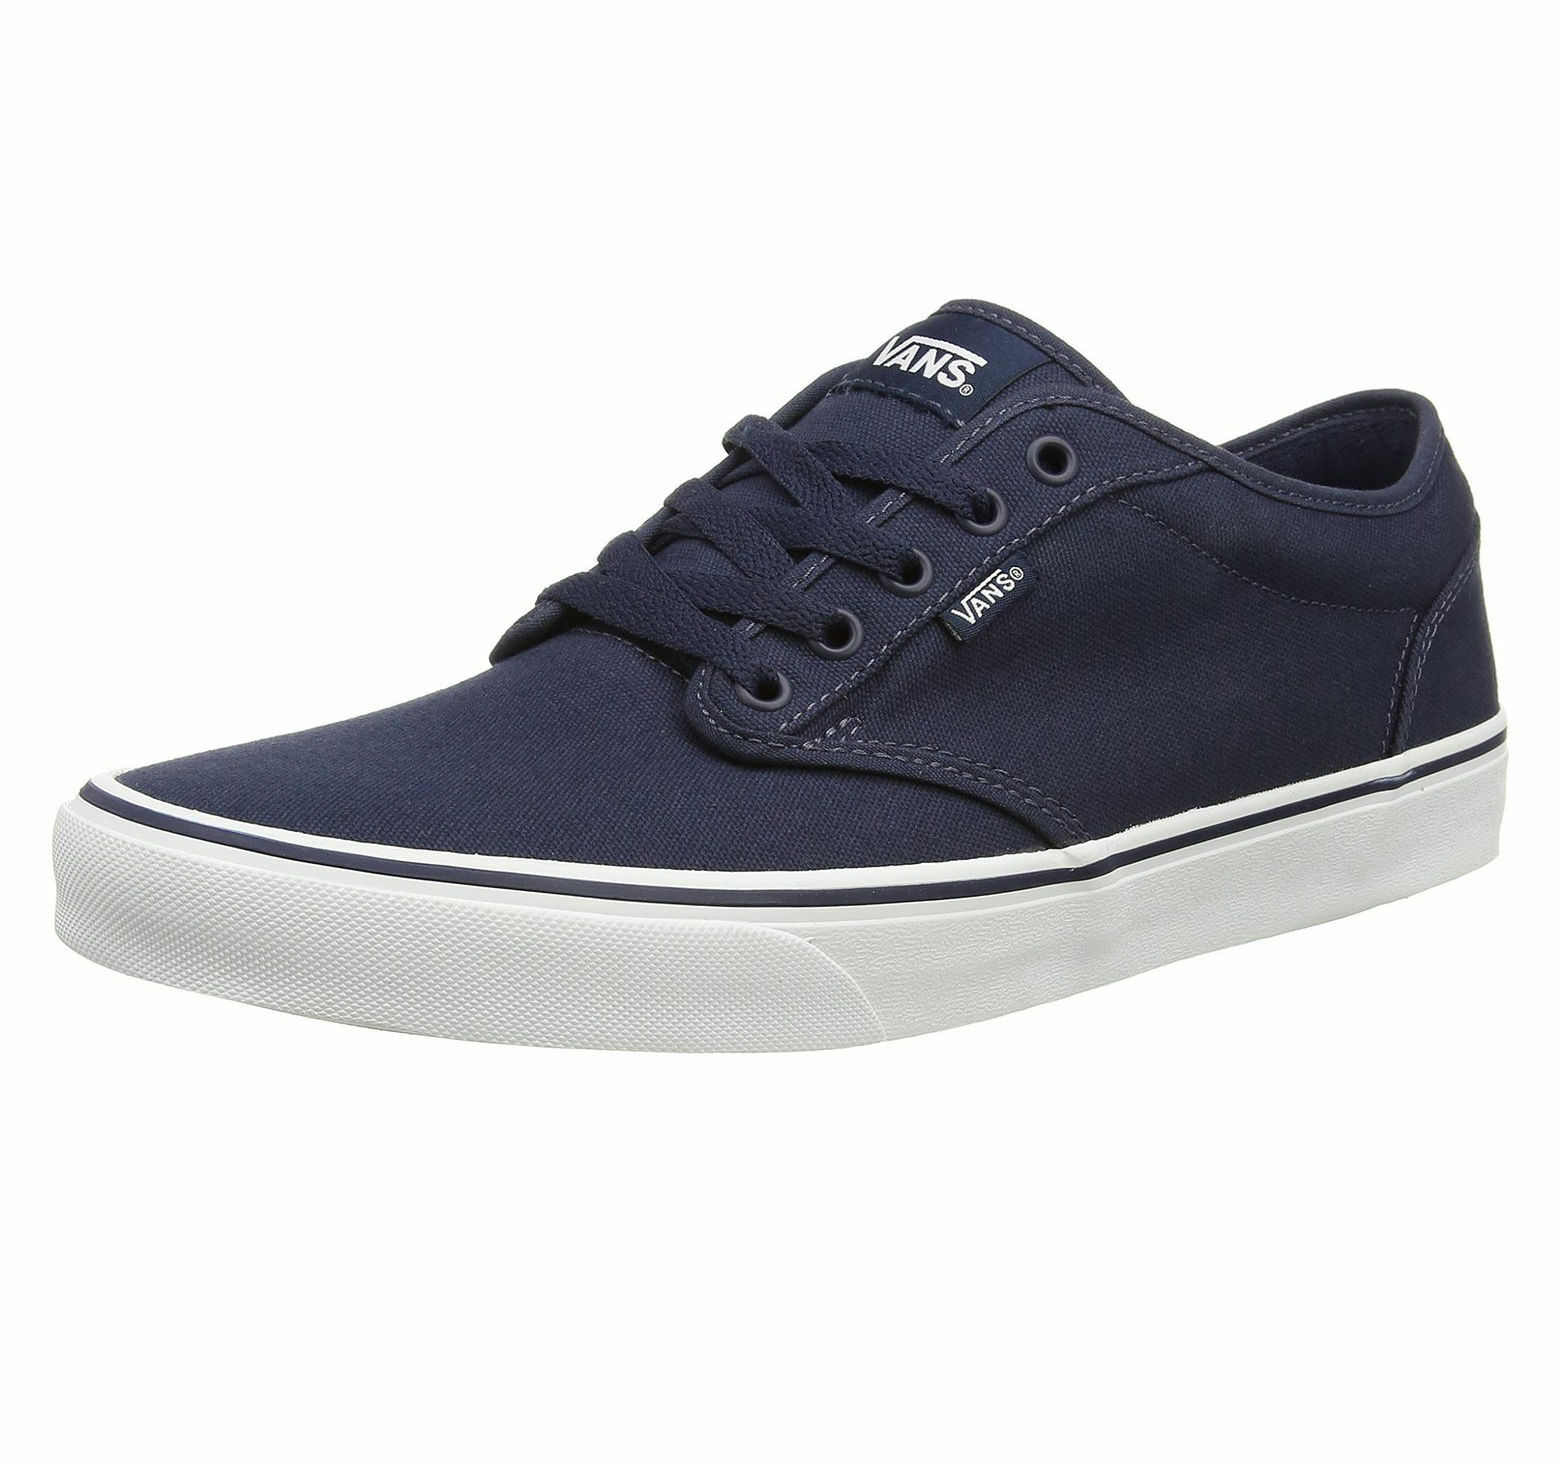 VANS Atwood   Herren Canvas Skater Trainers Plain Schuhes Lace Up Plimsolls Navy Weiß